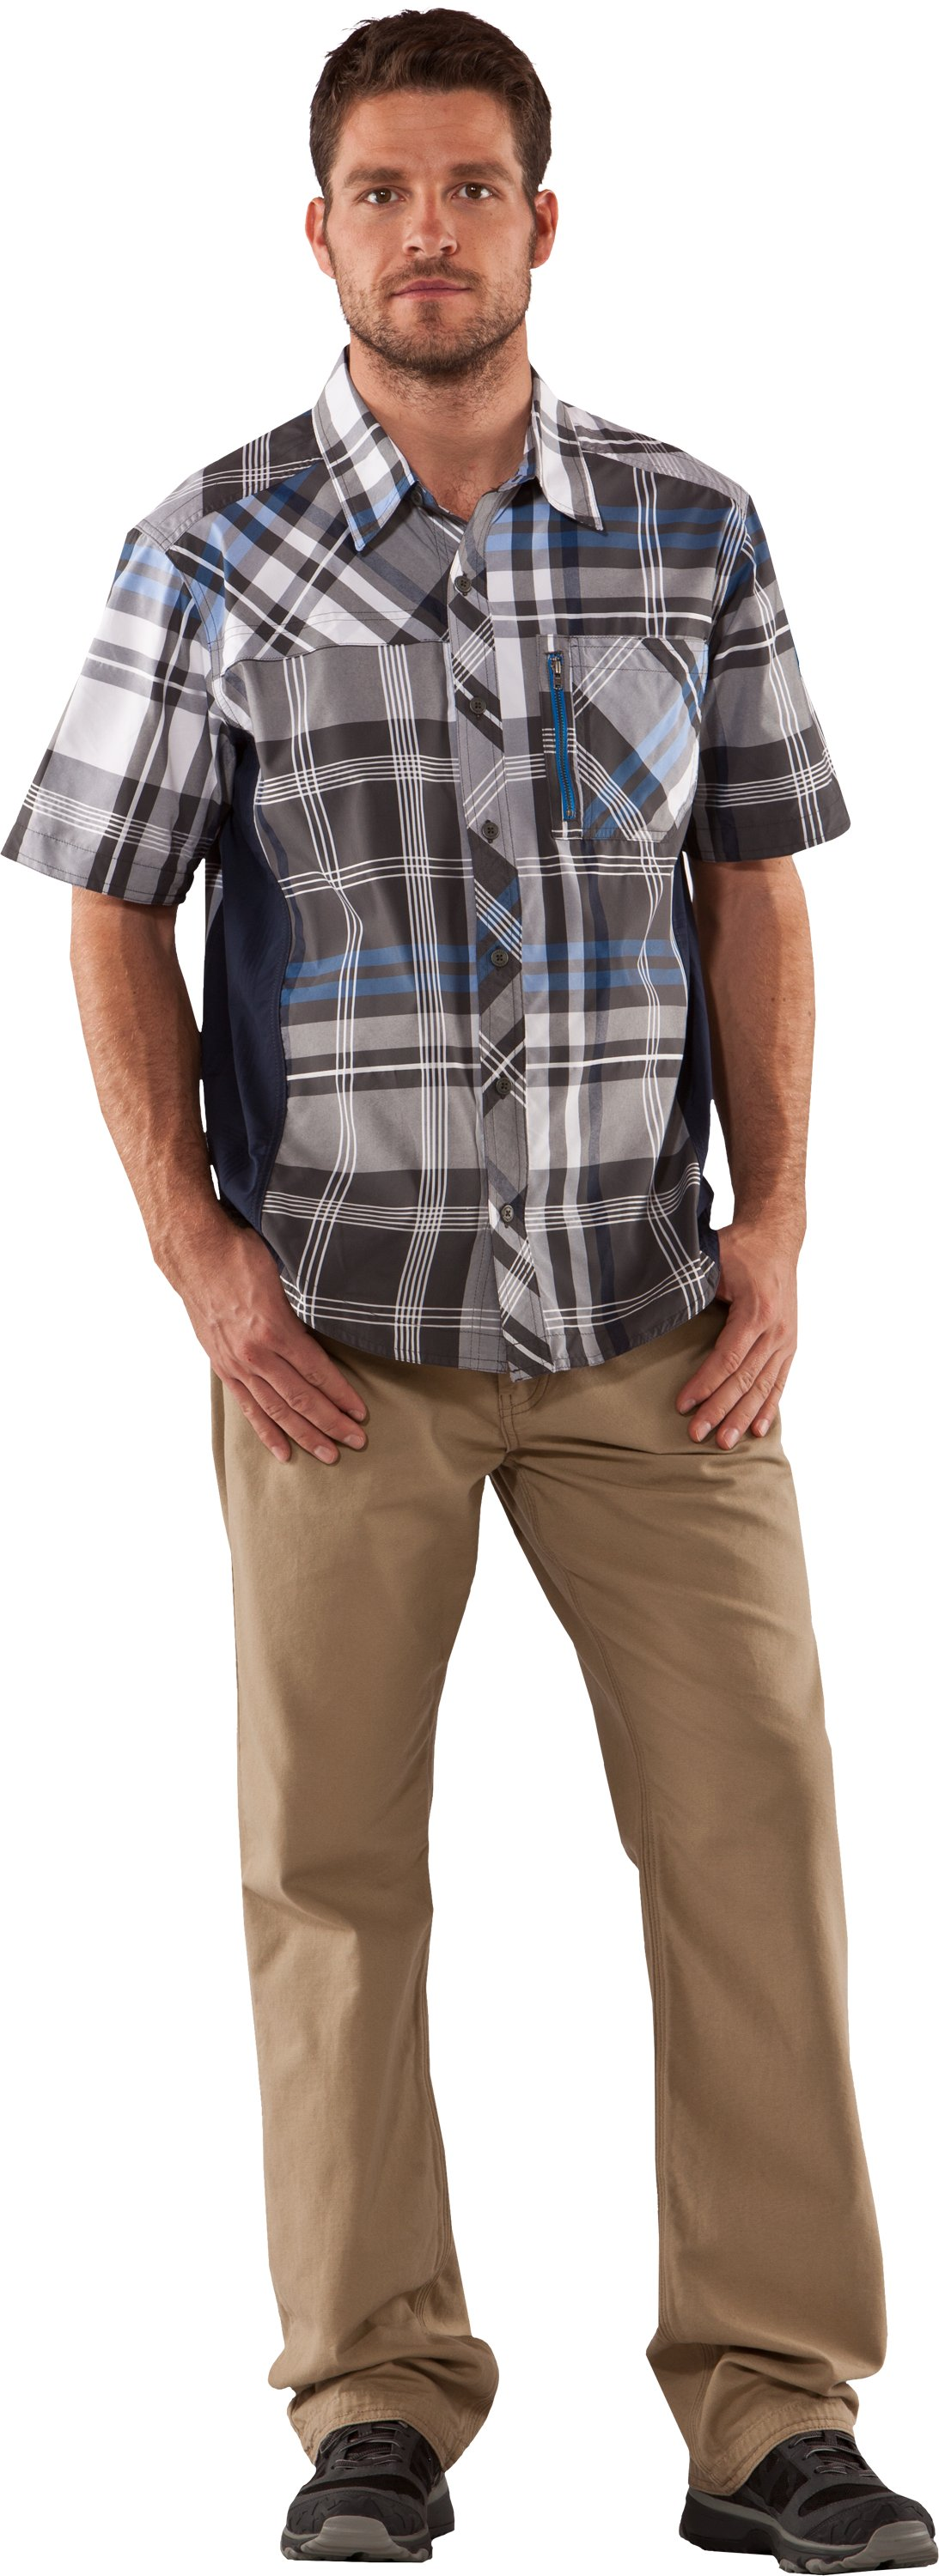 Men's Big Plaid Woven Short Sleeve Shirt, Battleship